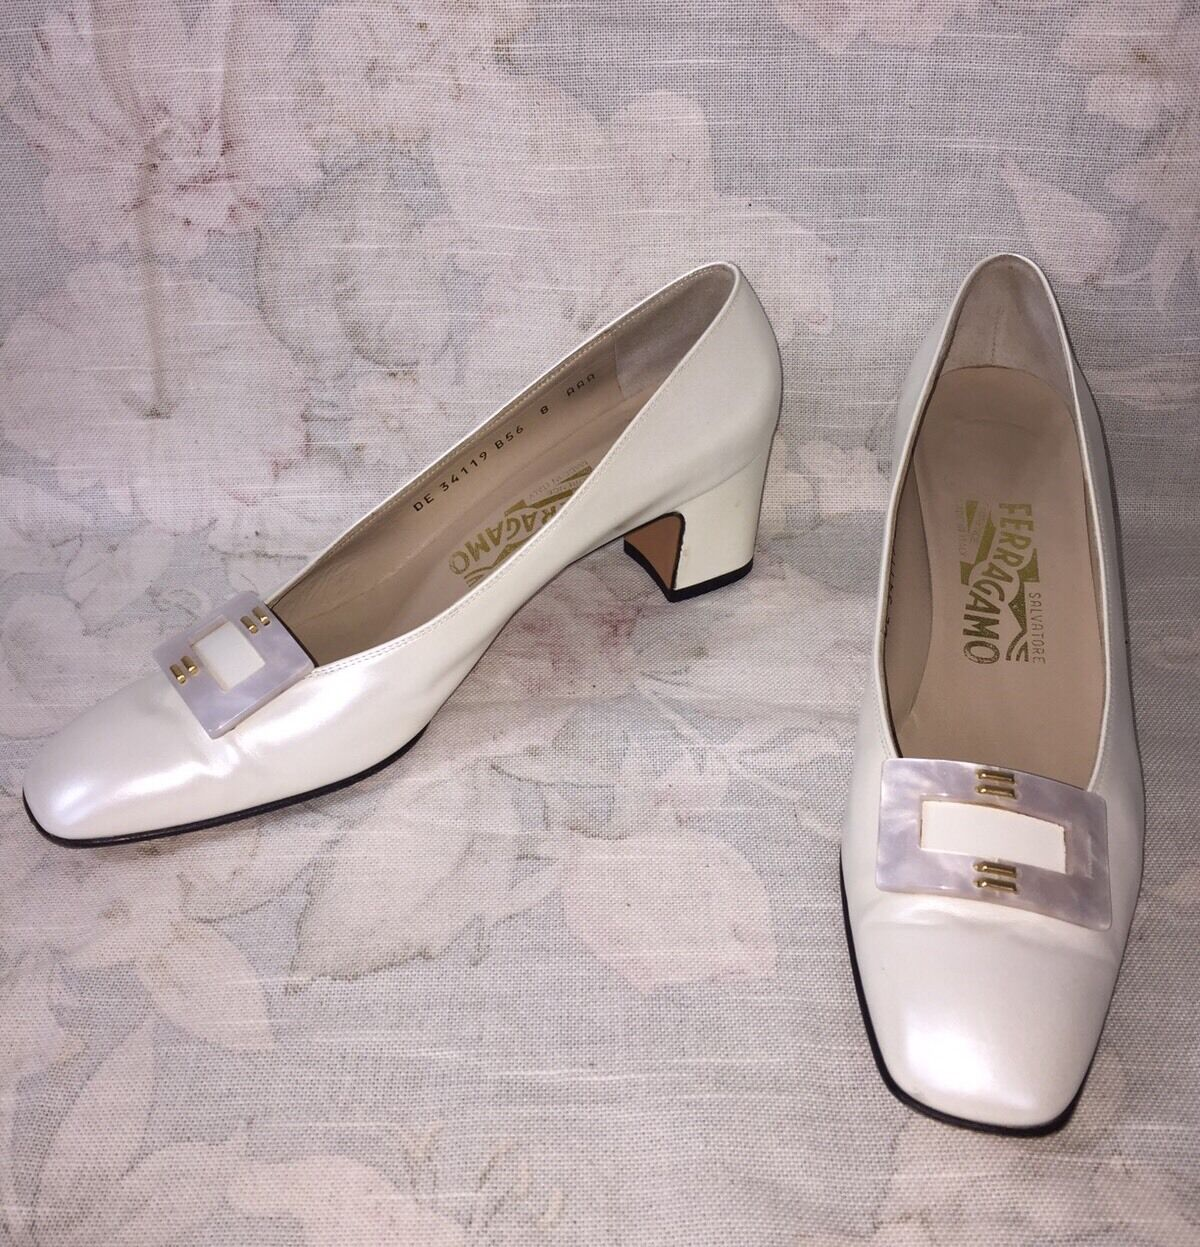 Salvatore Ferragamo ITALY Pearl WEISS Leder Pumps with Pearl Buckle sz 8 AAA